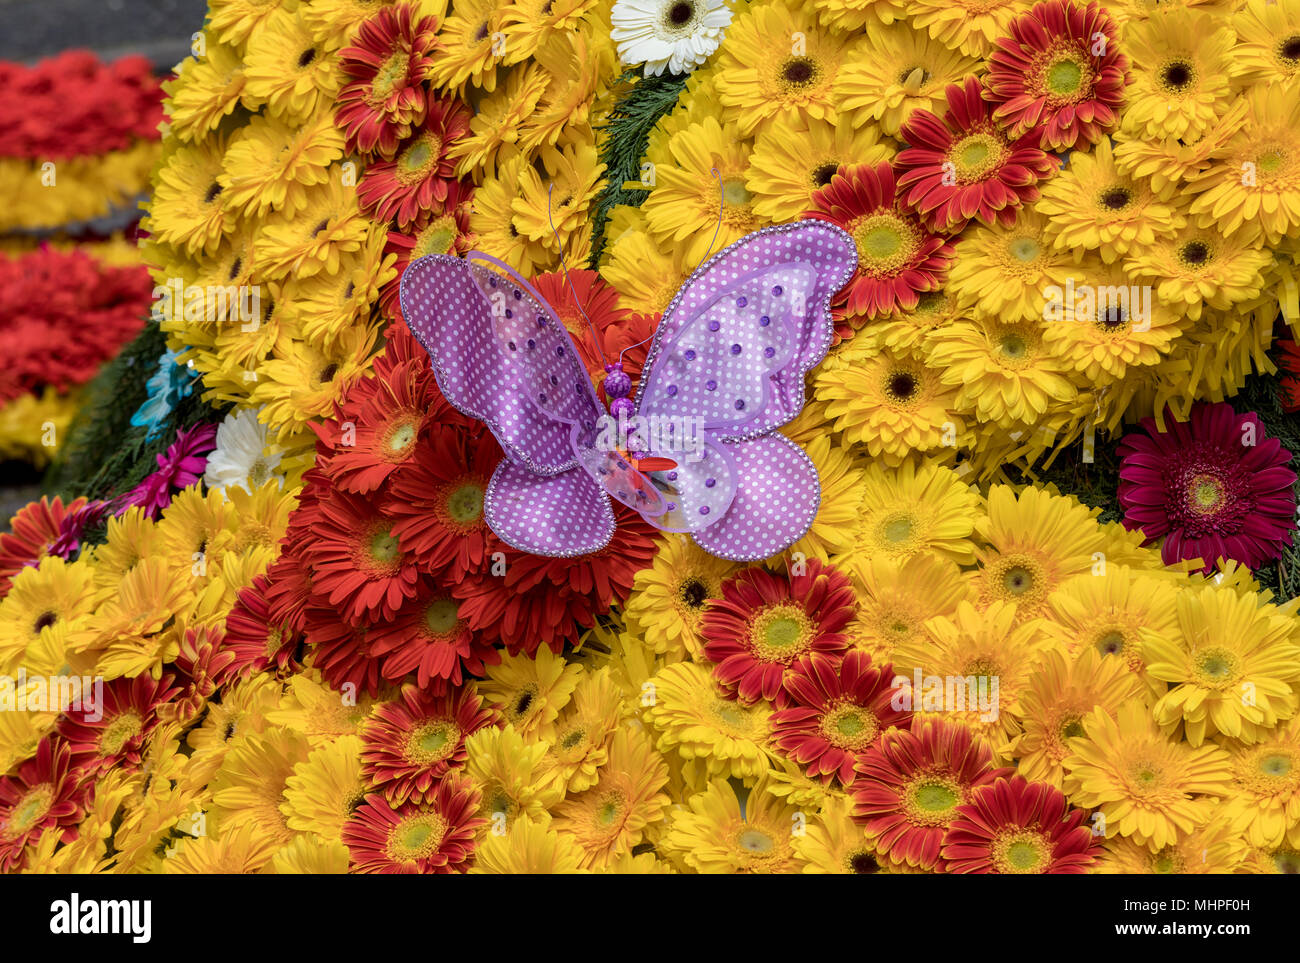 Flowers decoration at the Madeira Flower Festival. Madeira Islands, Portugal - Stock Image